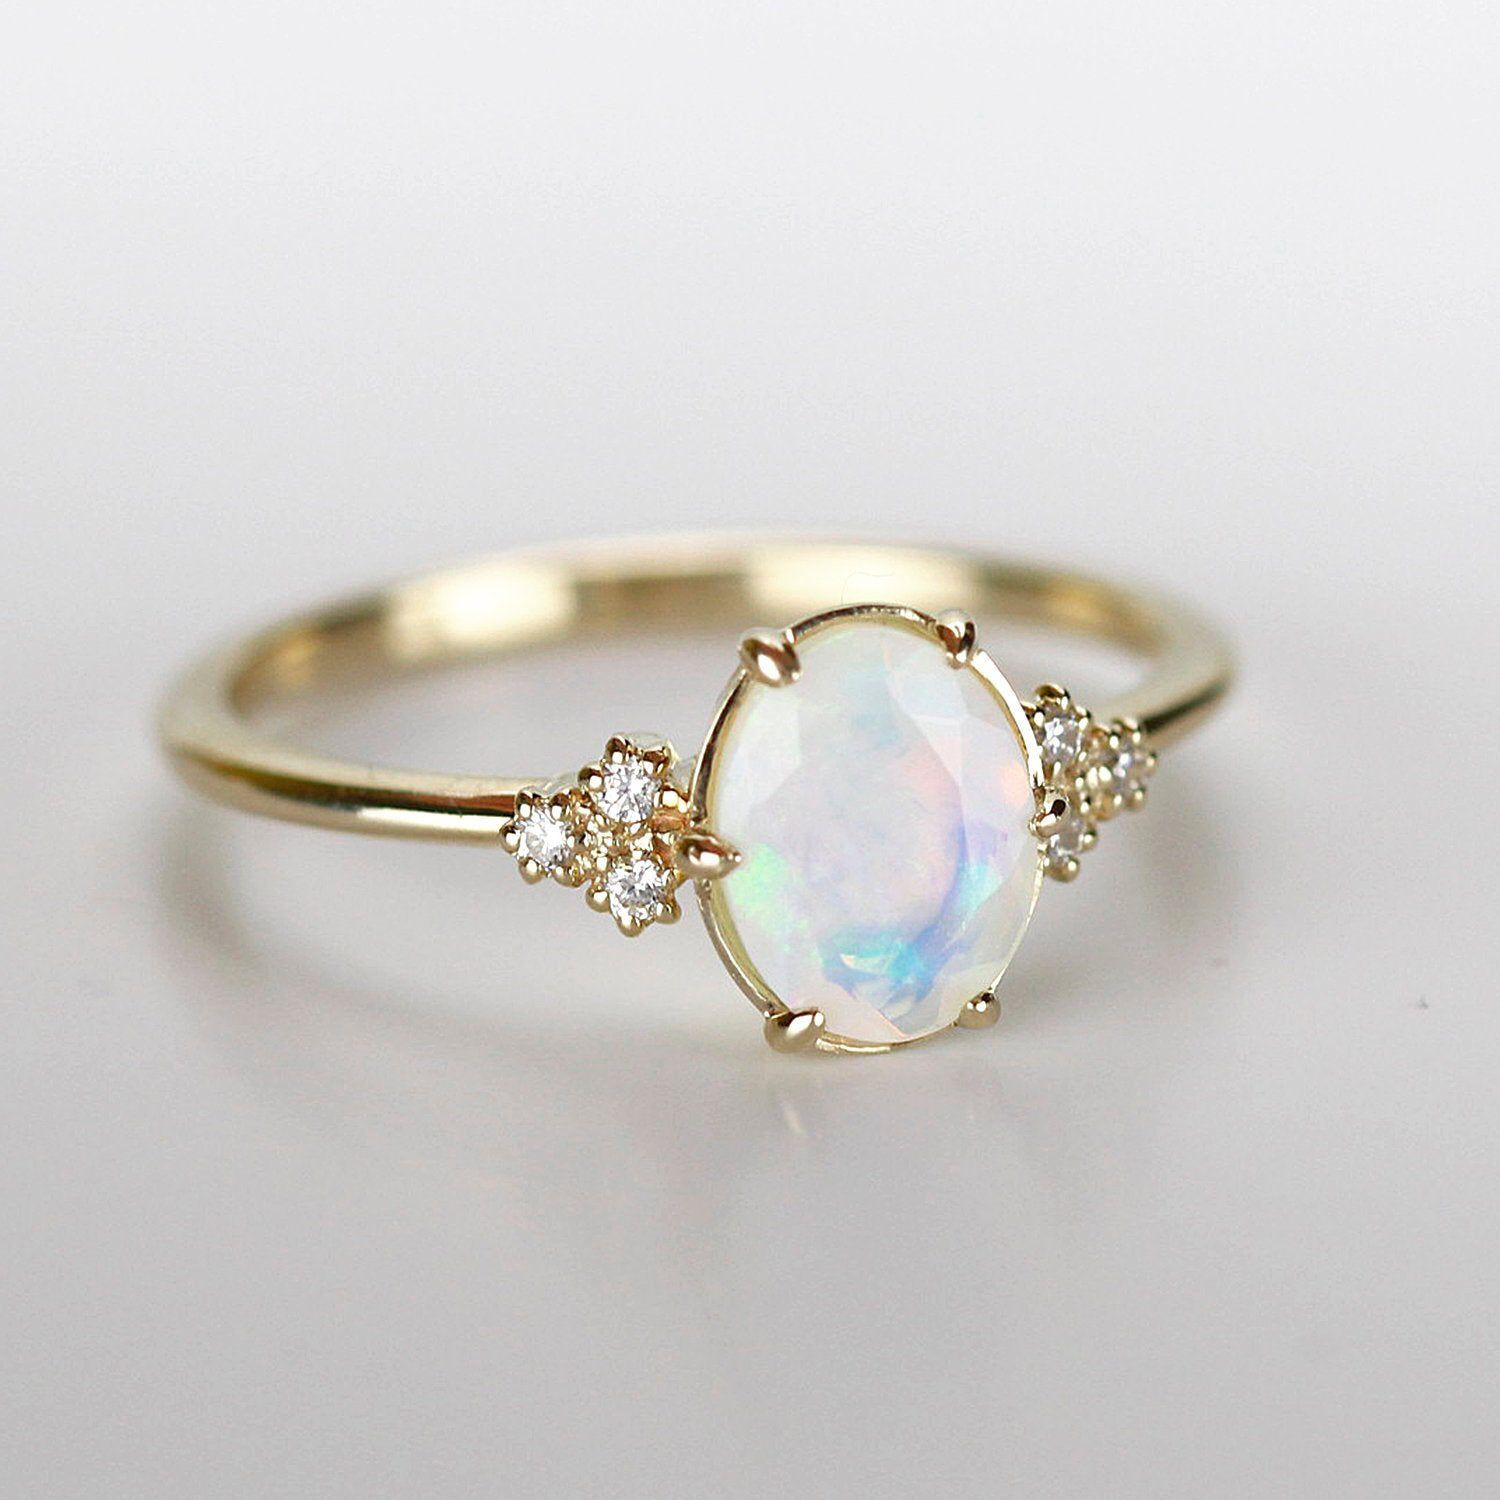 Opal Engagement Ring Opal And Diamond Ring Engagement Ring Delicate Ring Minimalist Engagement Ring Engagement Ring Diamonds Engagement Rings Opal Opal Wedding Rings Opal Engagement